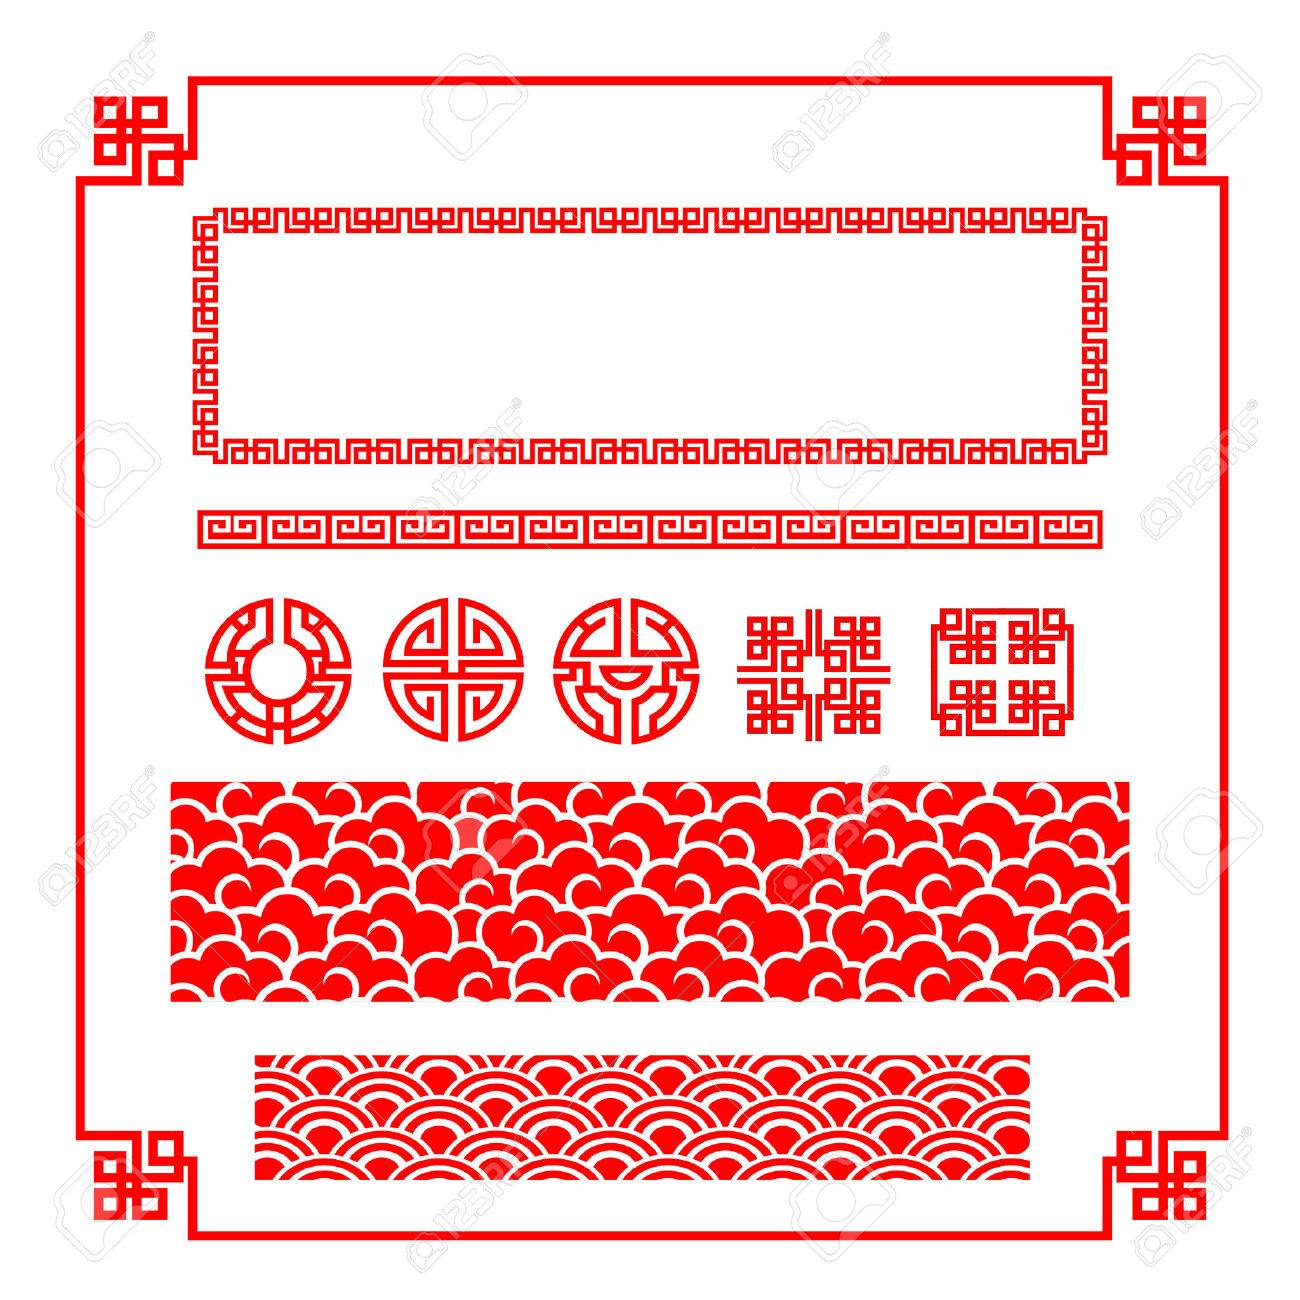 Chinese happy new year red border for decoration design element illustration - 50602133